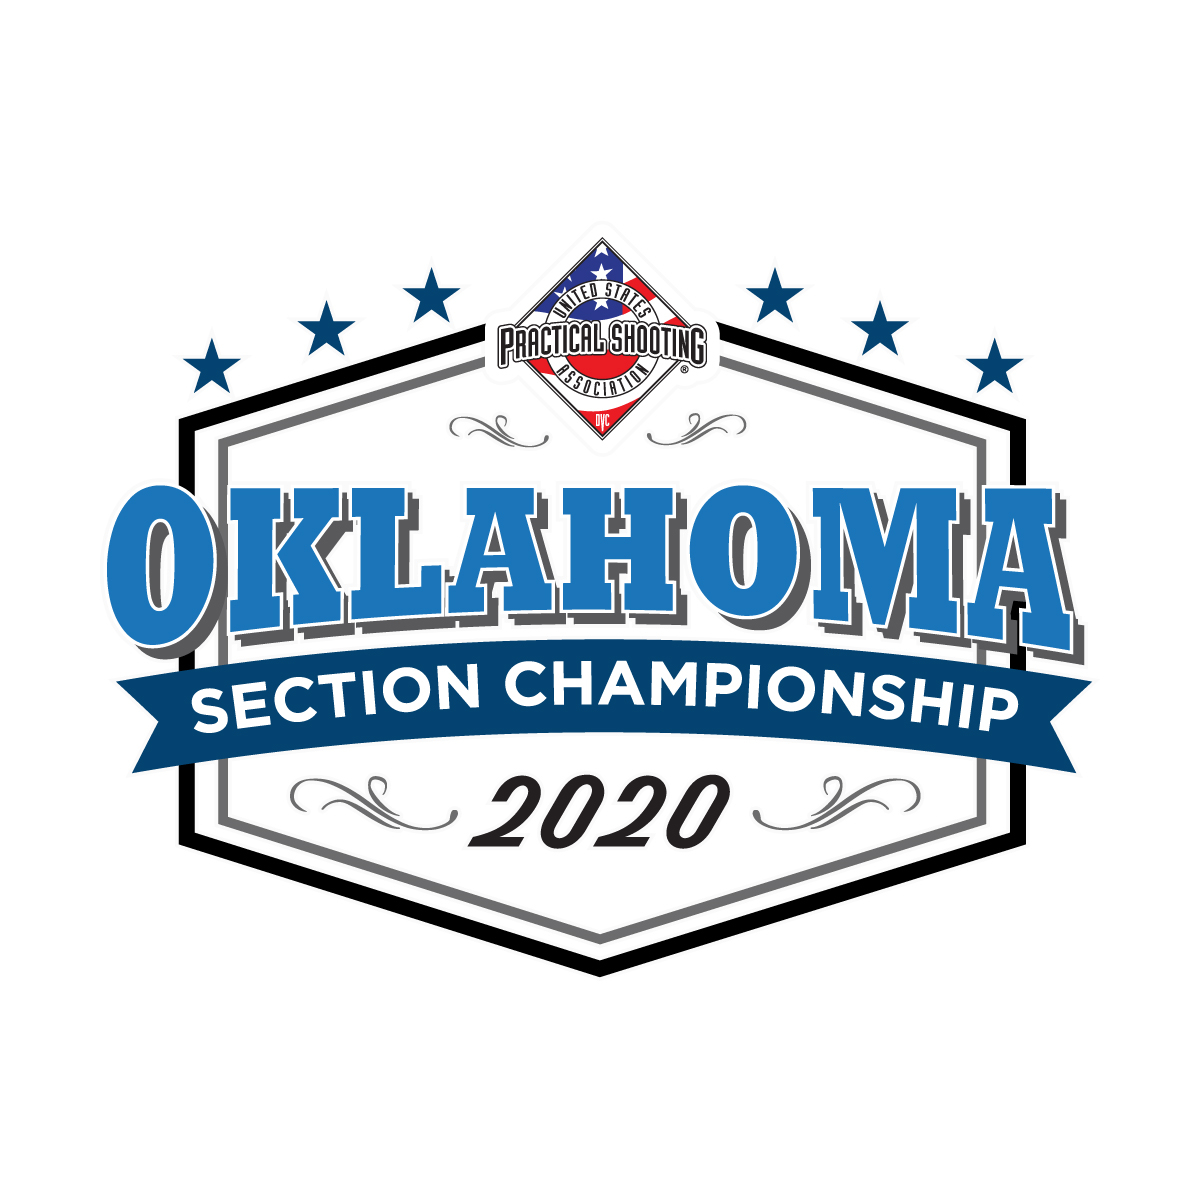 2020 Oklahoma Section Championship